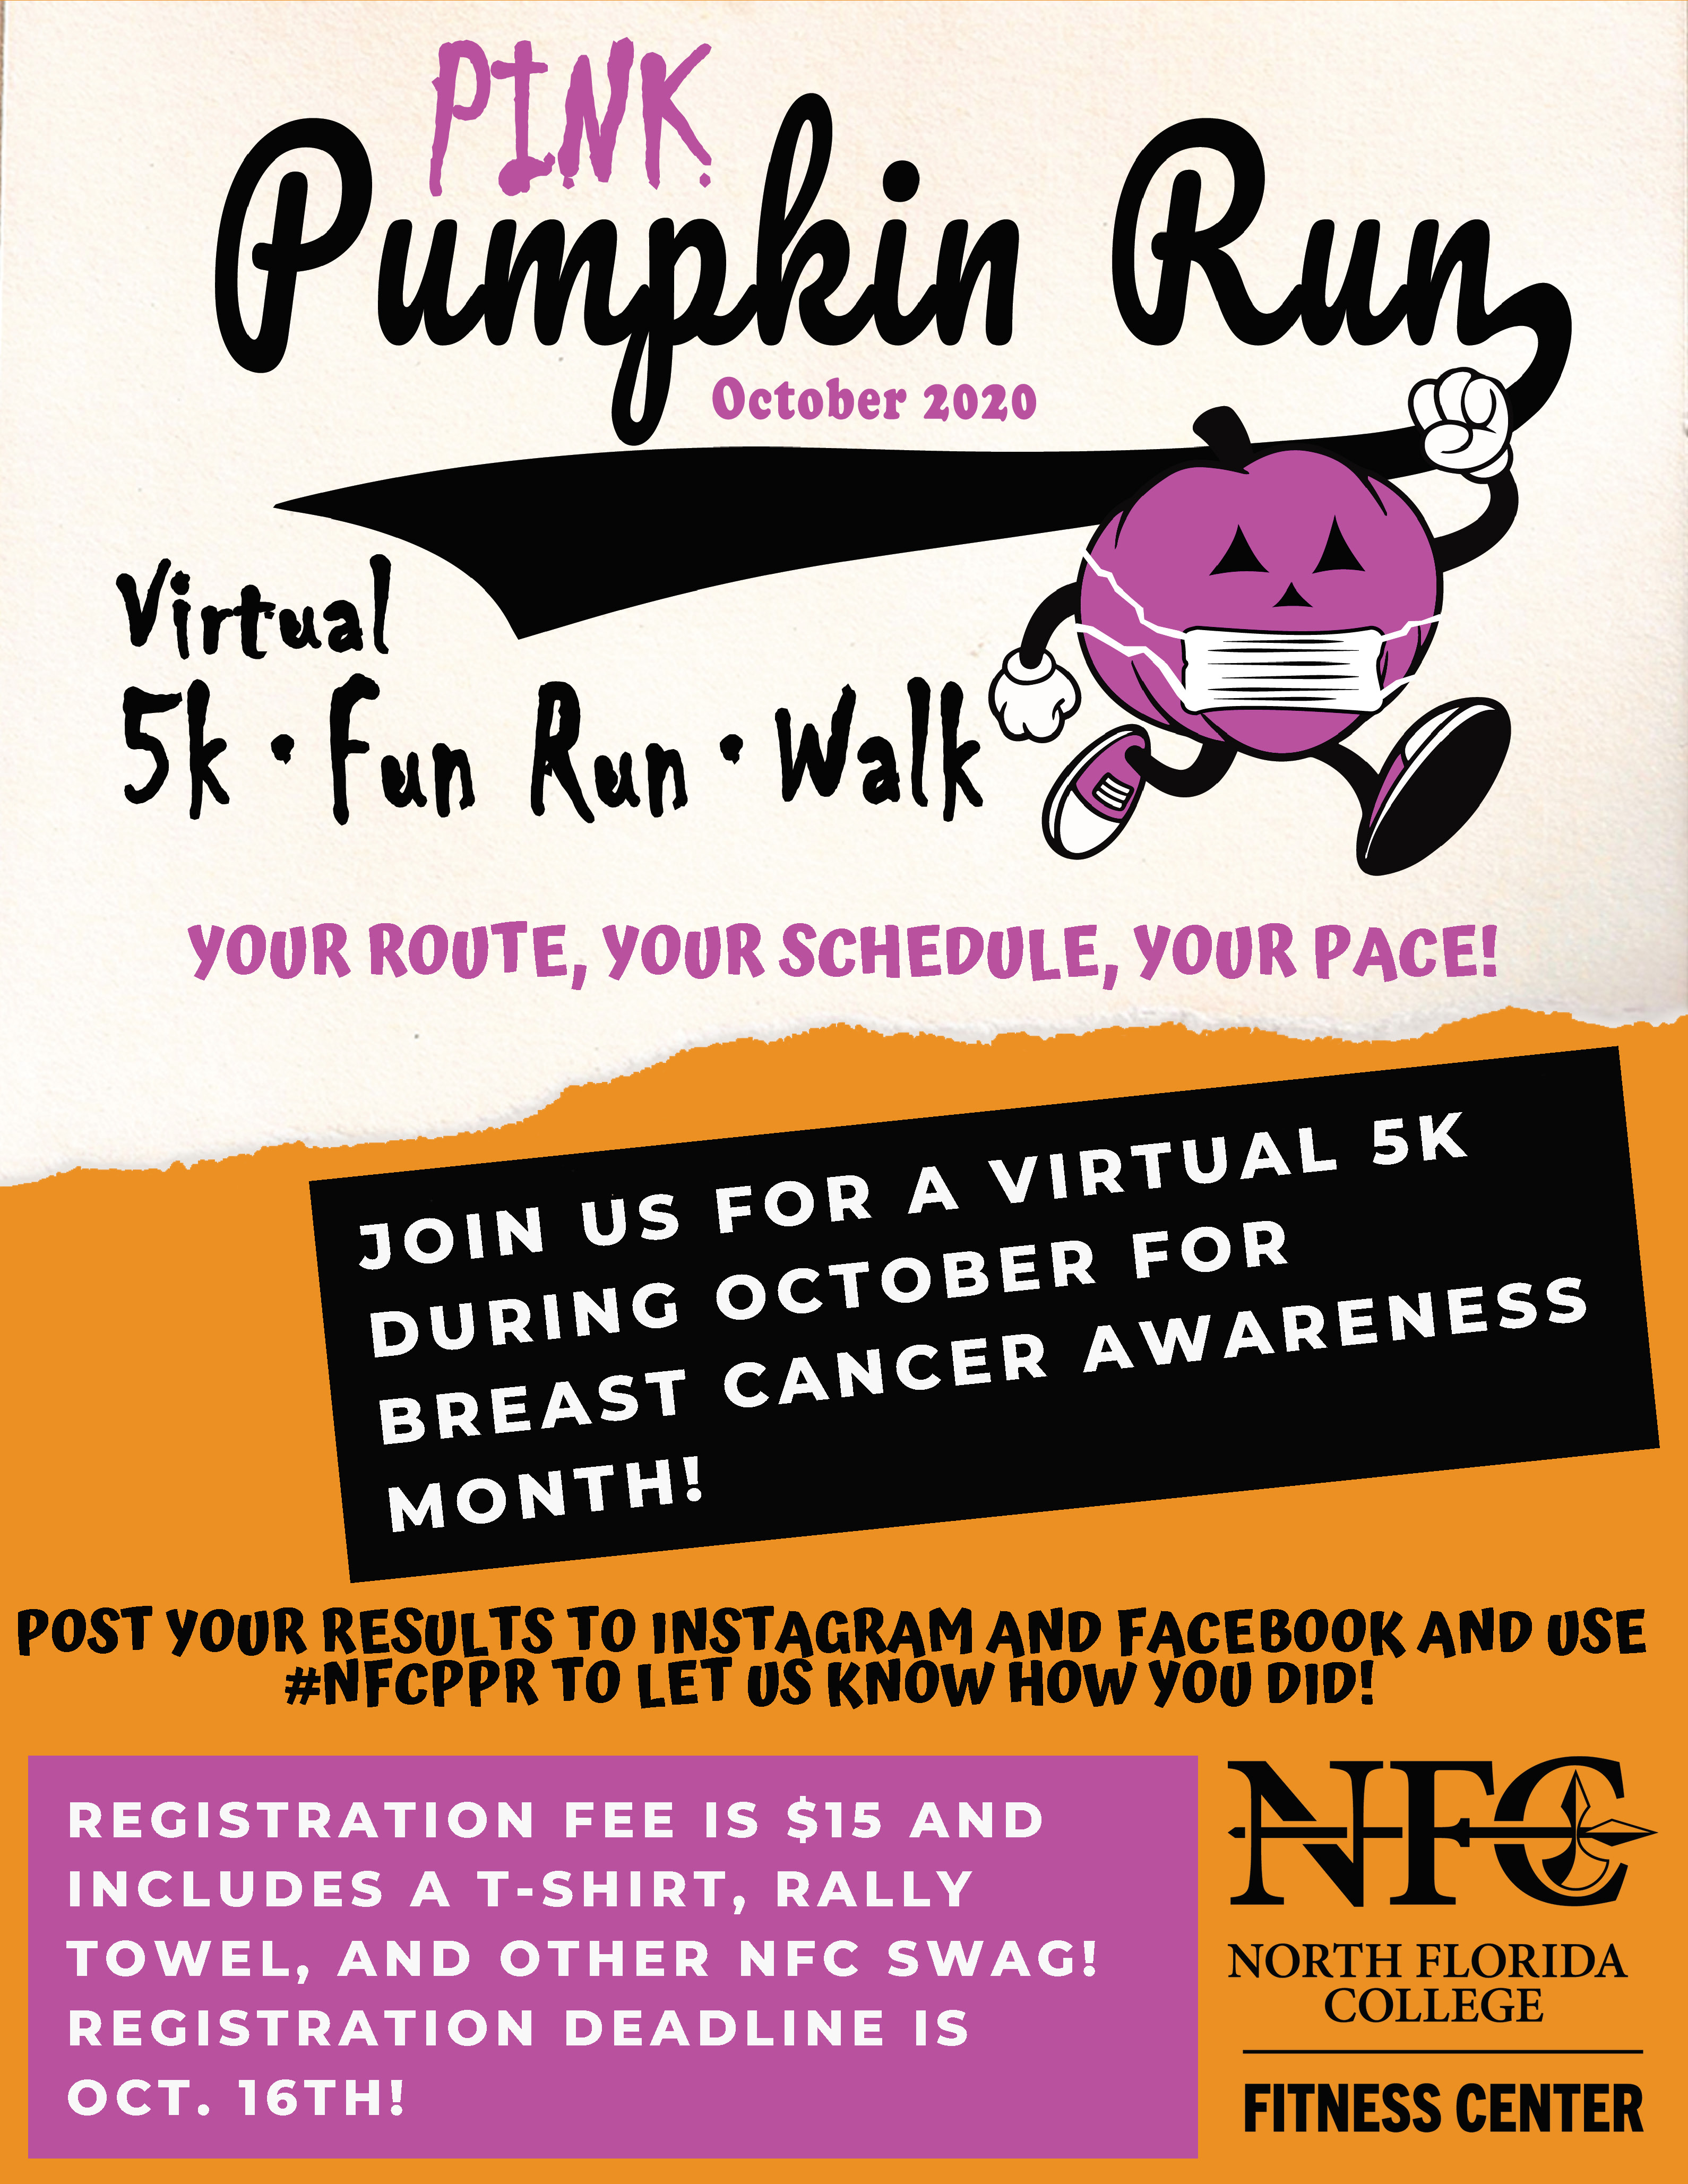 Pink Pumpkin Run Flyer 2020 Image